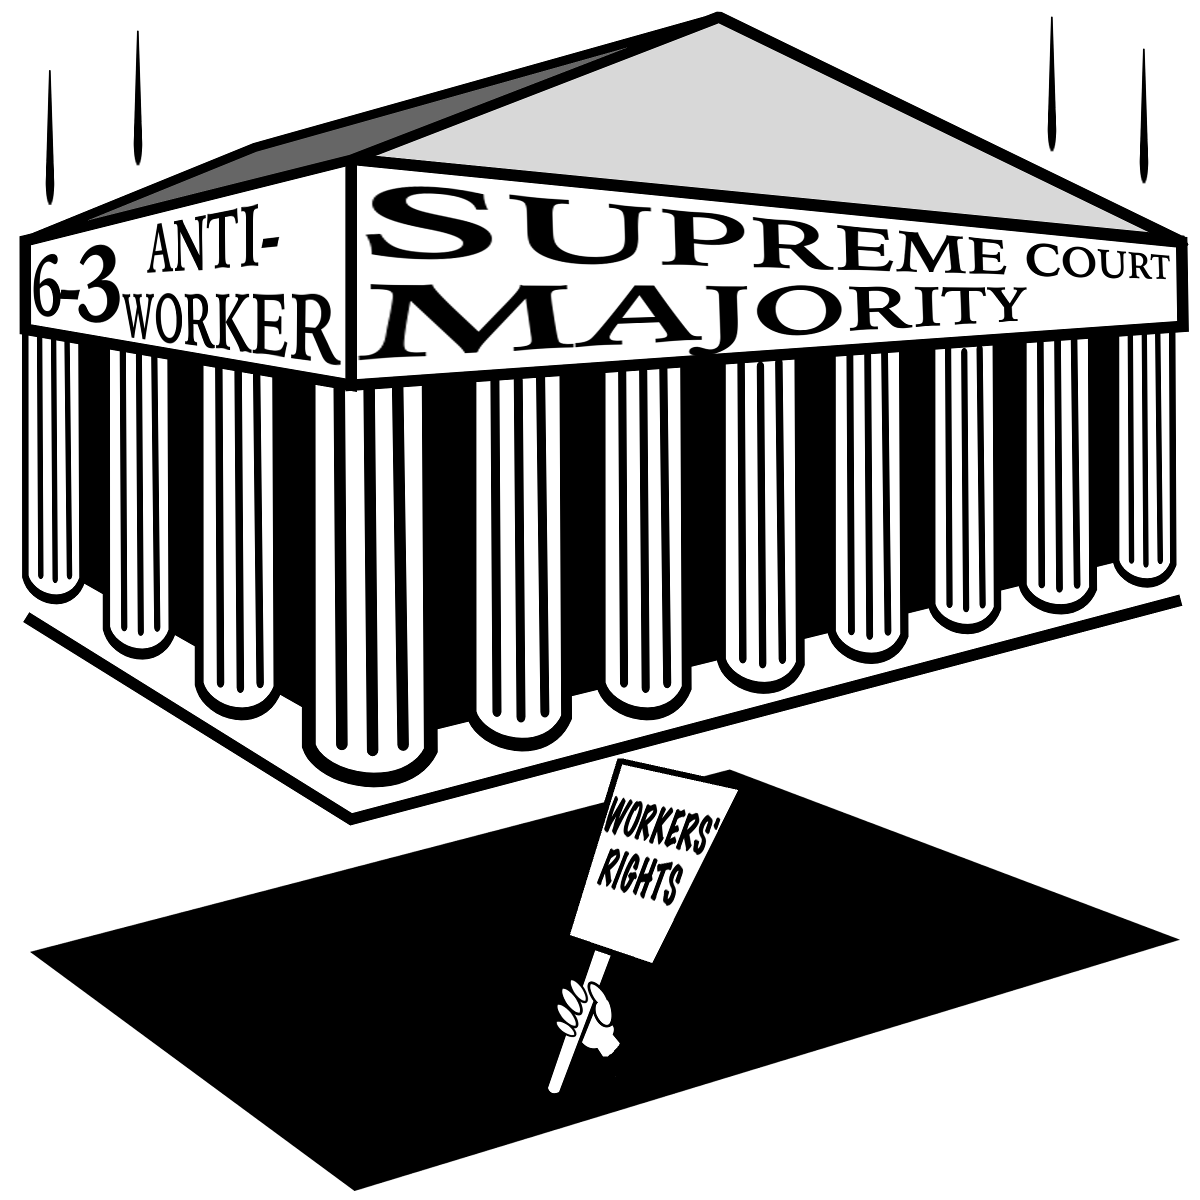 Cartoon of the Supreme Court building, with the words 6-3 Anti-Worker Supreme Court Majority, falling on a hand holding a Workers' Rights picket sign